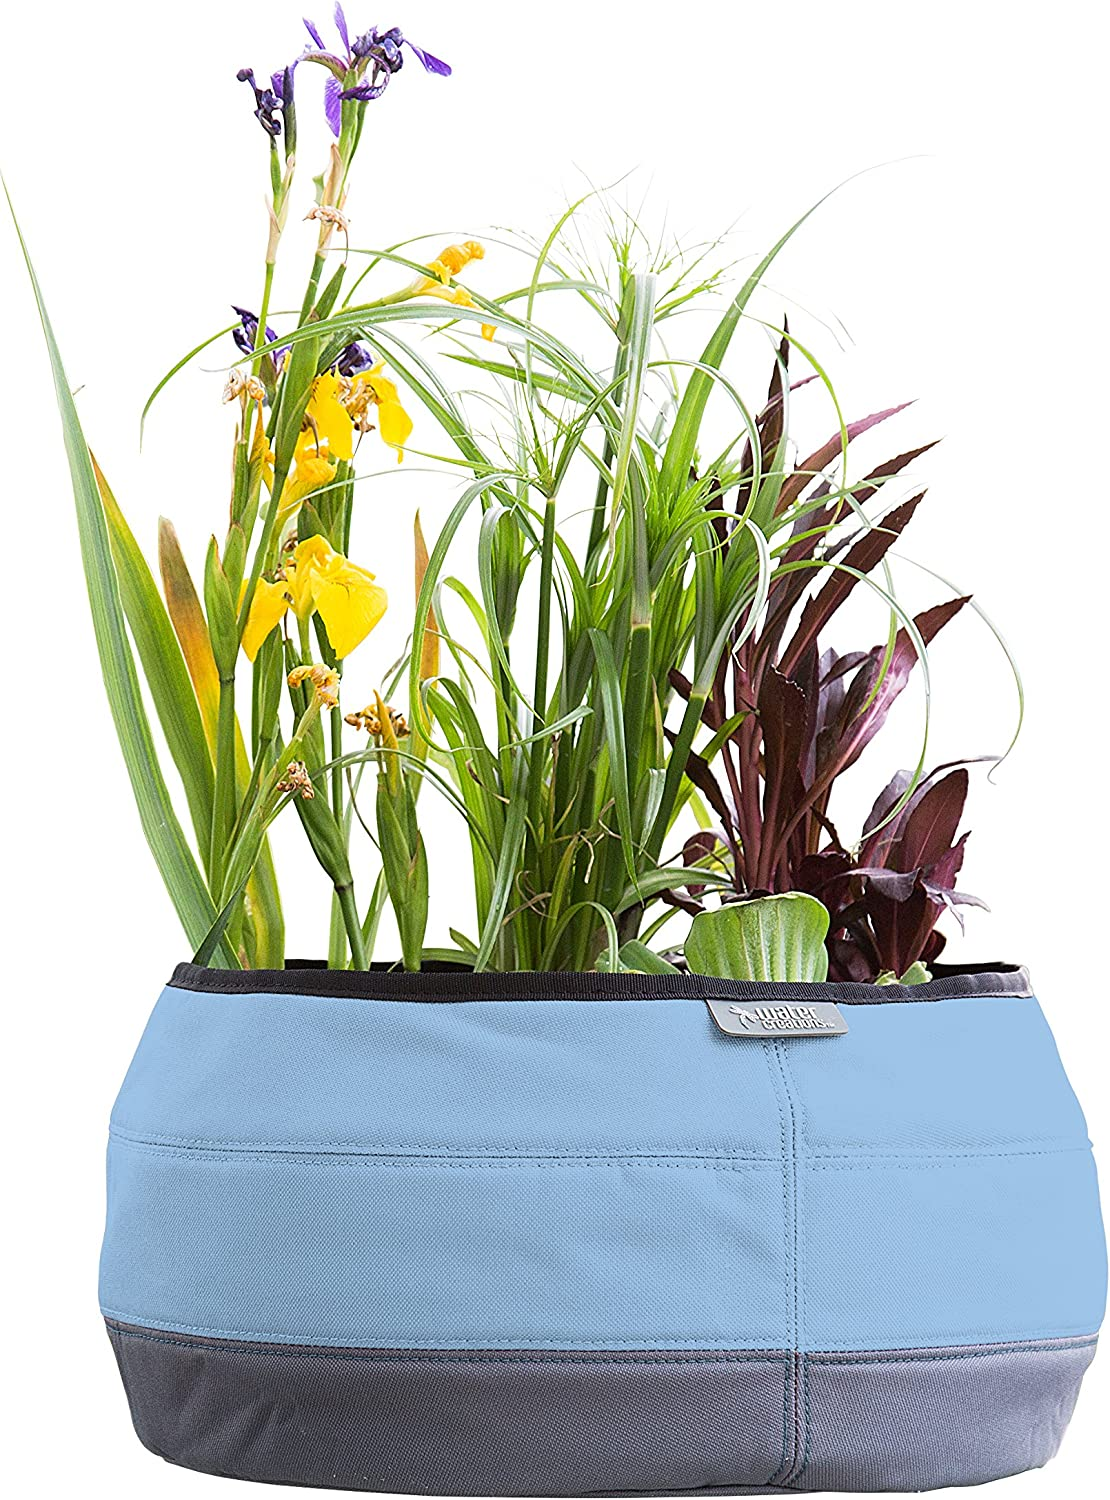 Water Creations Deco Planter Large Pot for Home and Garden, for use with Aquatic Plants, Herbs, and more, 13-Inch, Blue